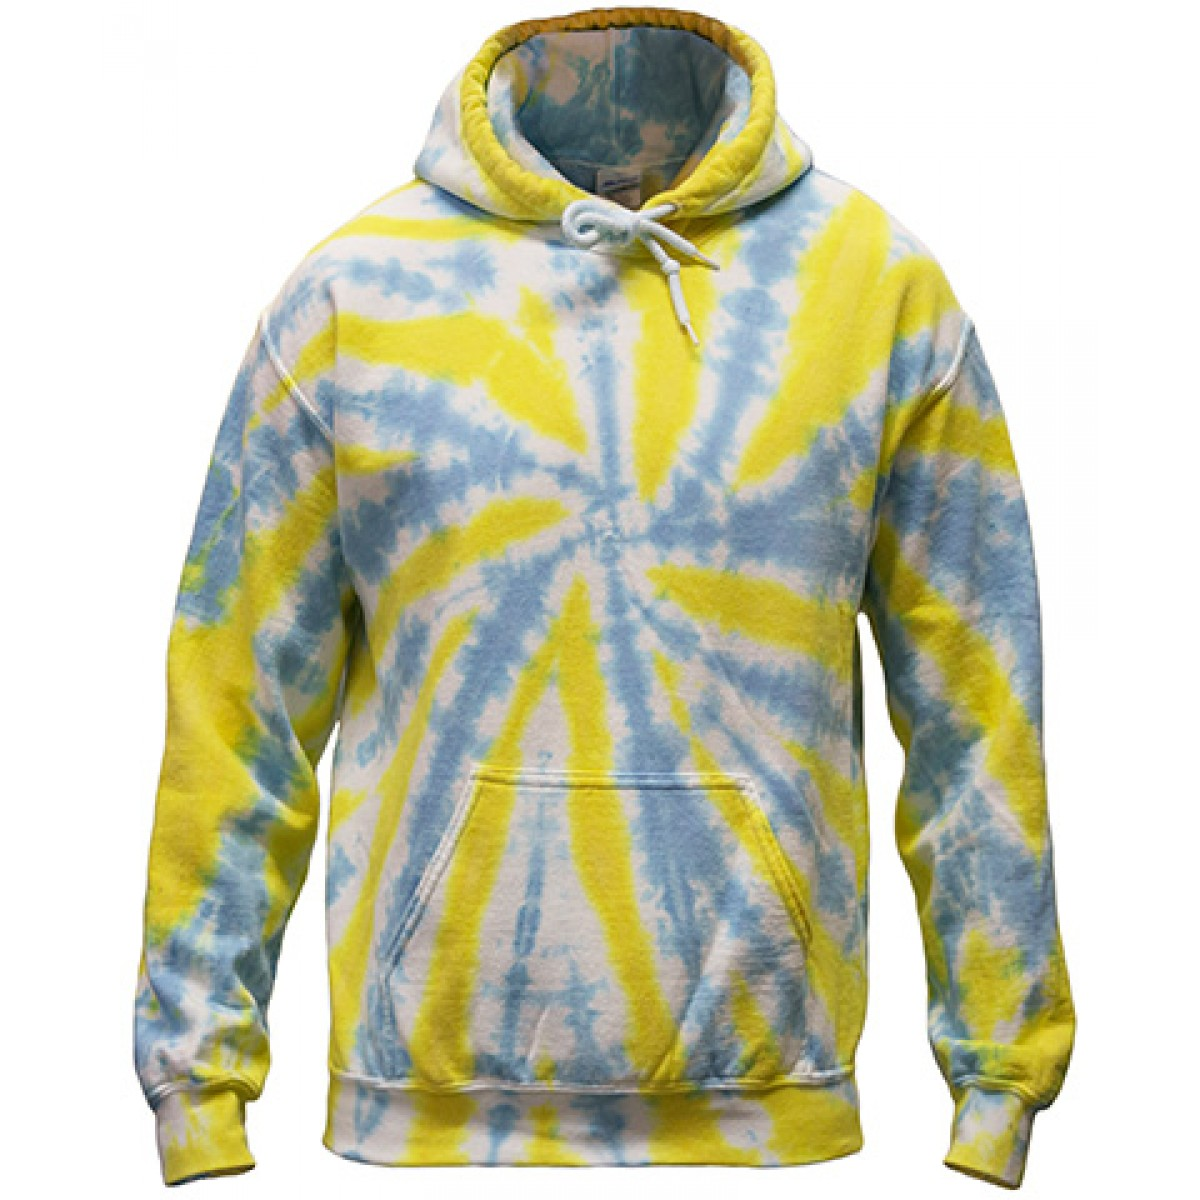 Tie-Dye Pullover Hooded Sweatshirt-Blue/Yellow-M